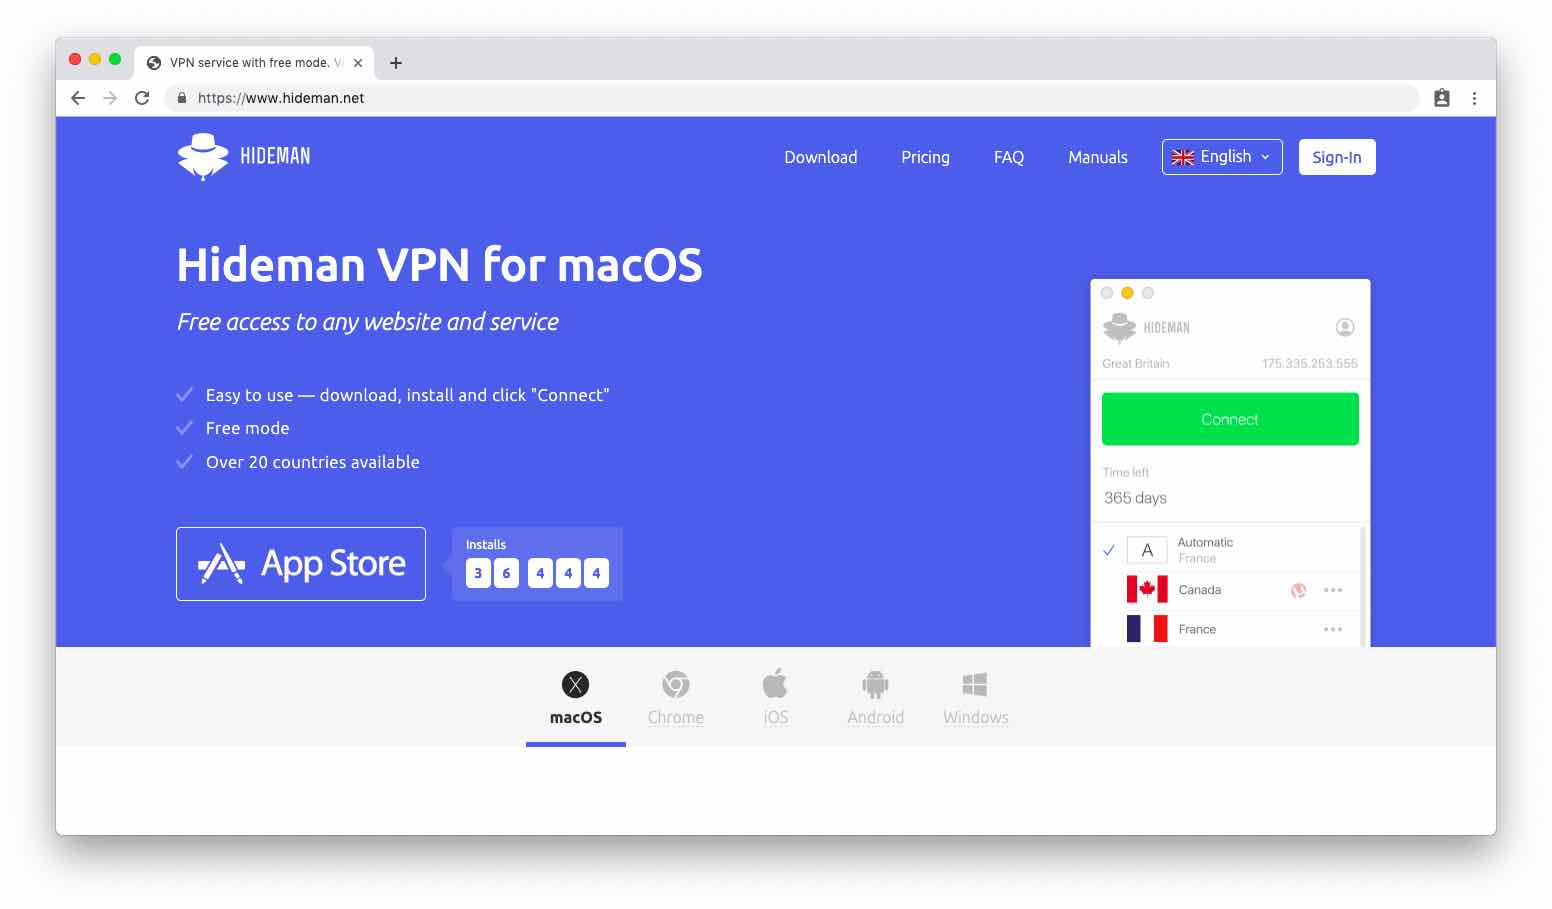 vpn gratis hideman security privacy data encrypted